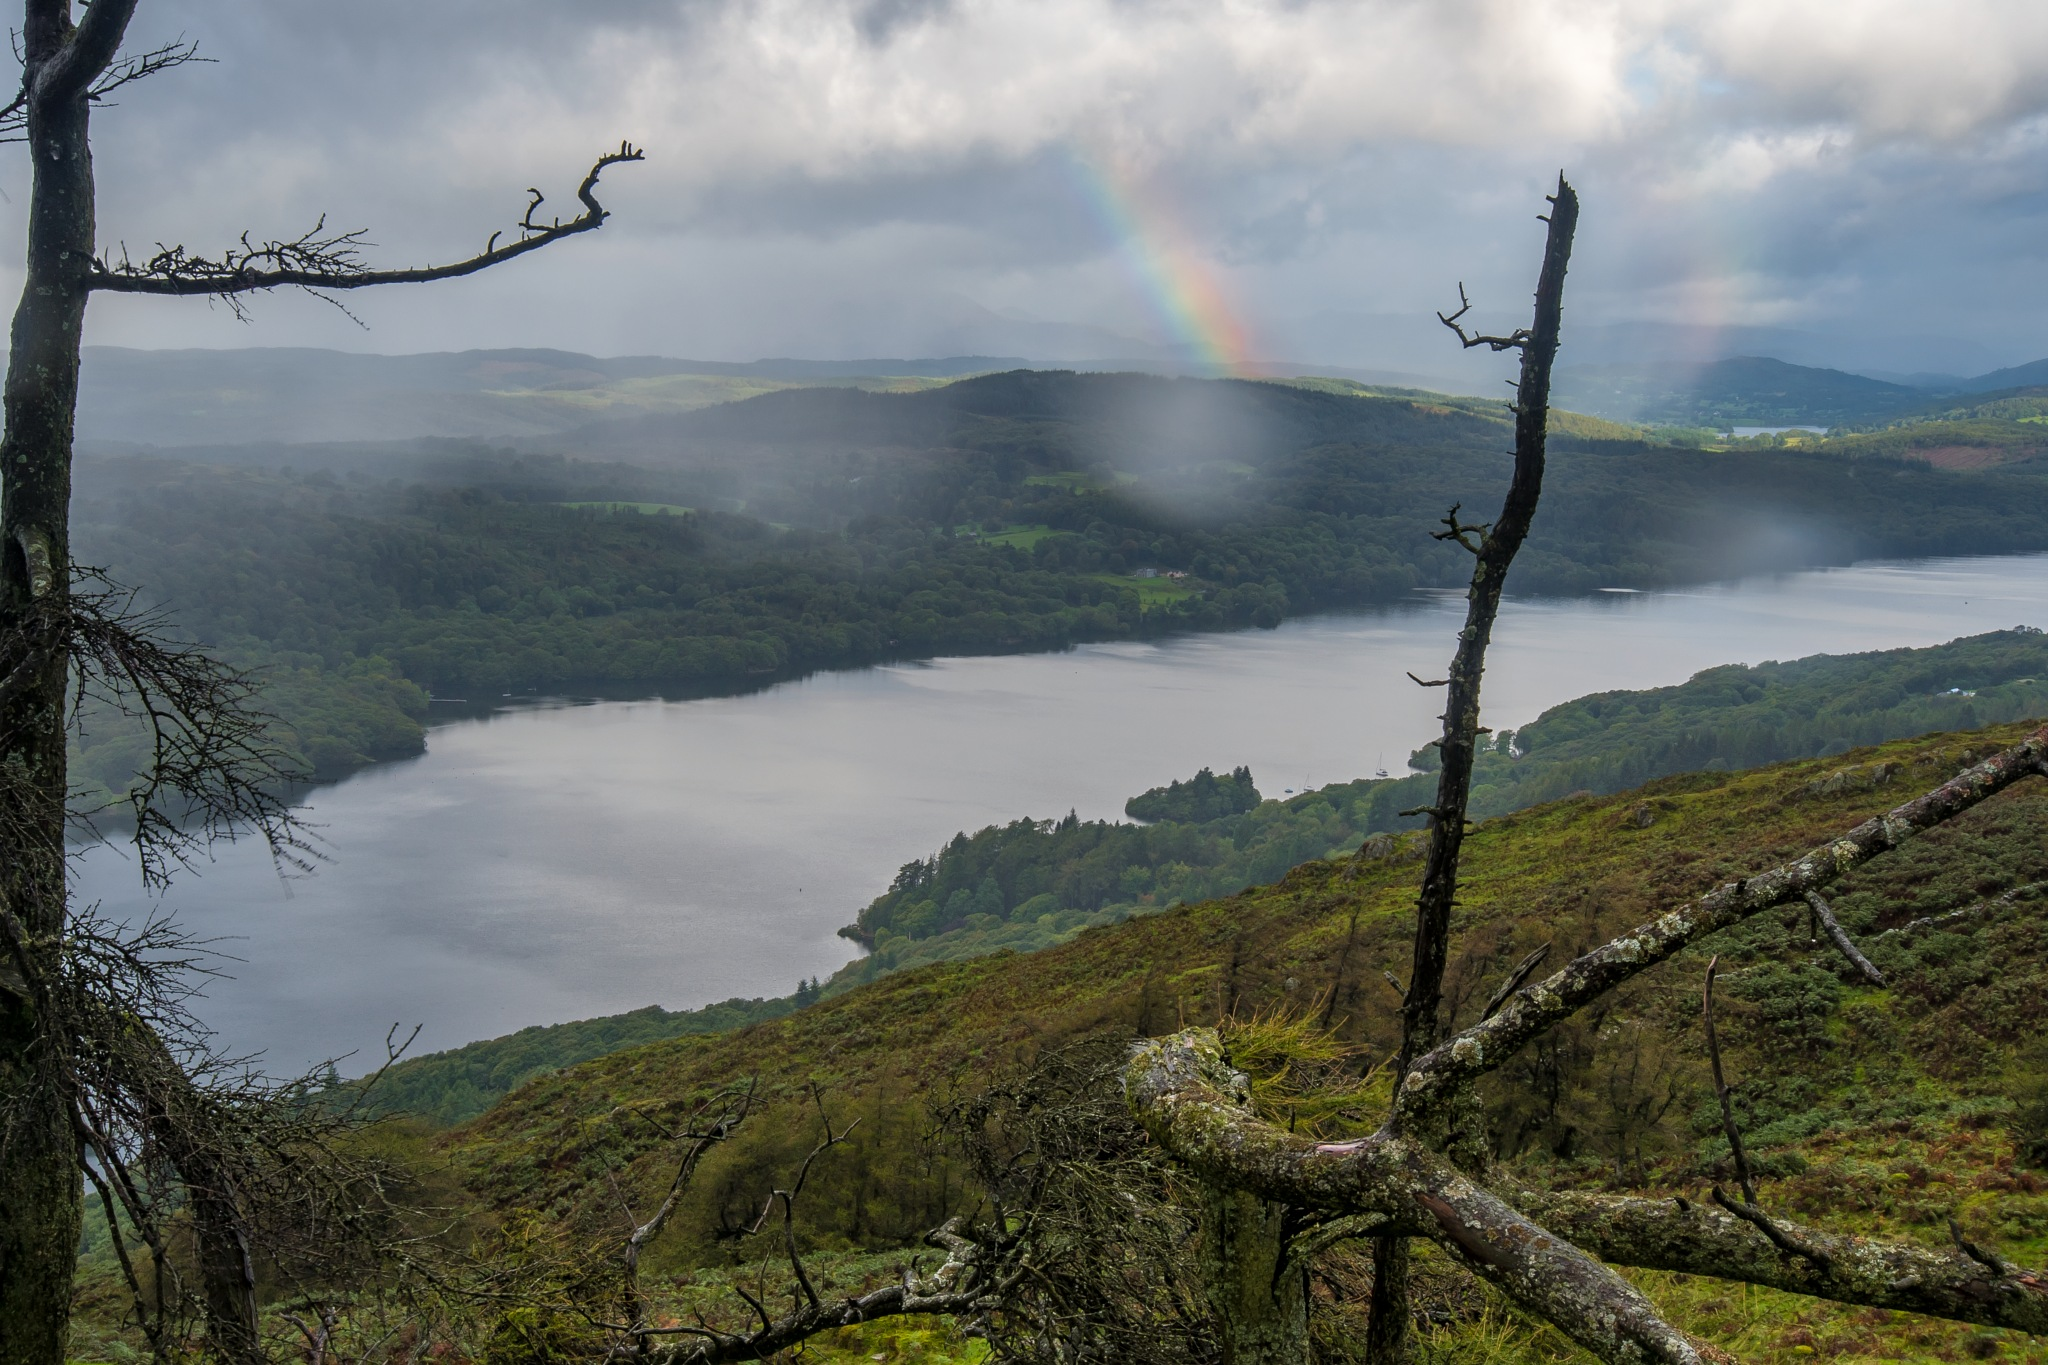 Squwals, sun and rainbows all in one! by Stephen Hammond